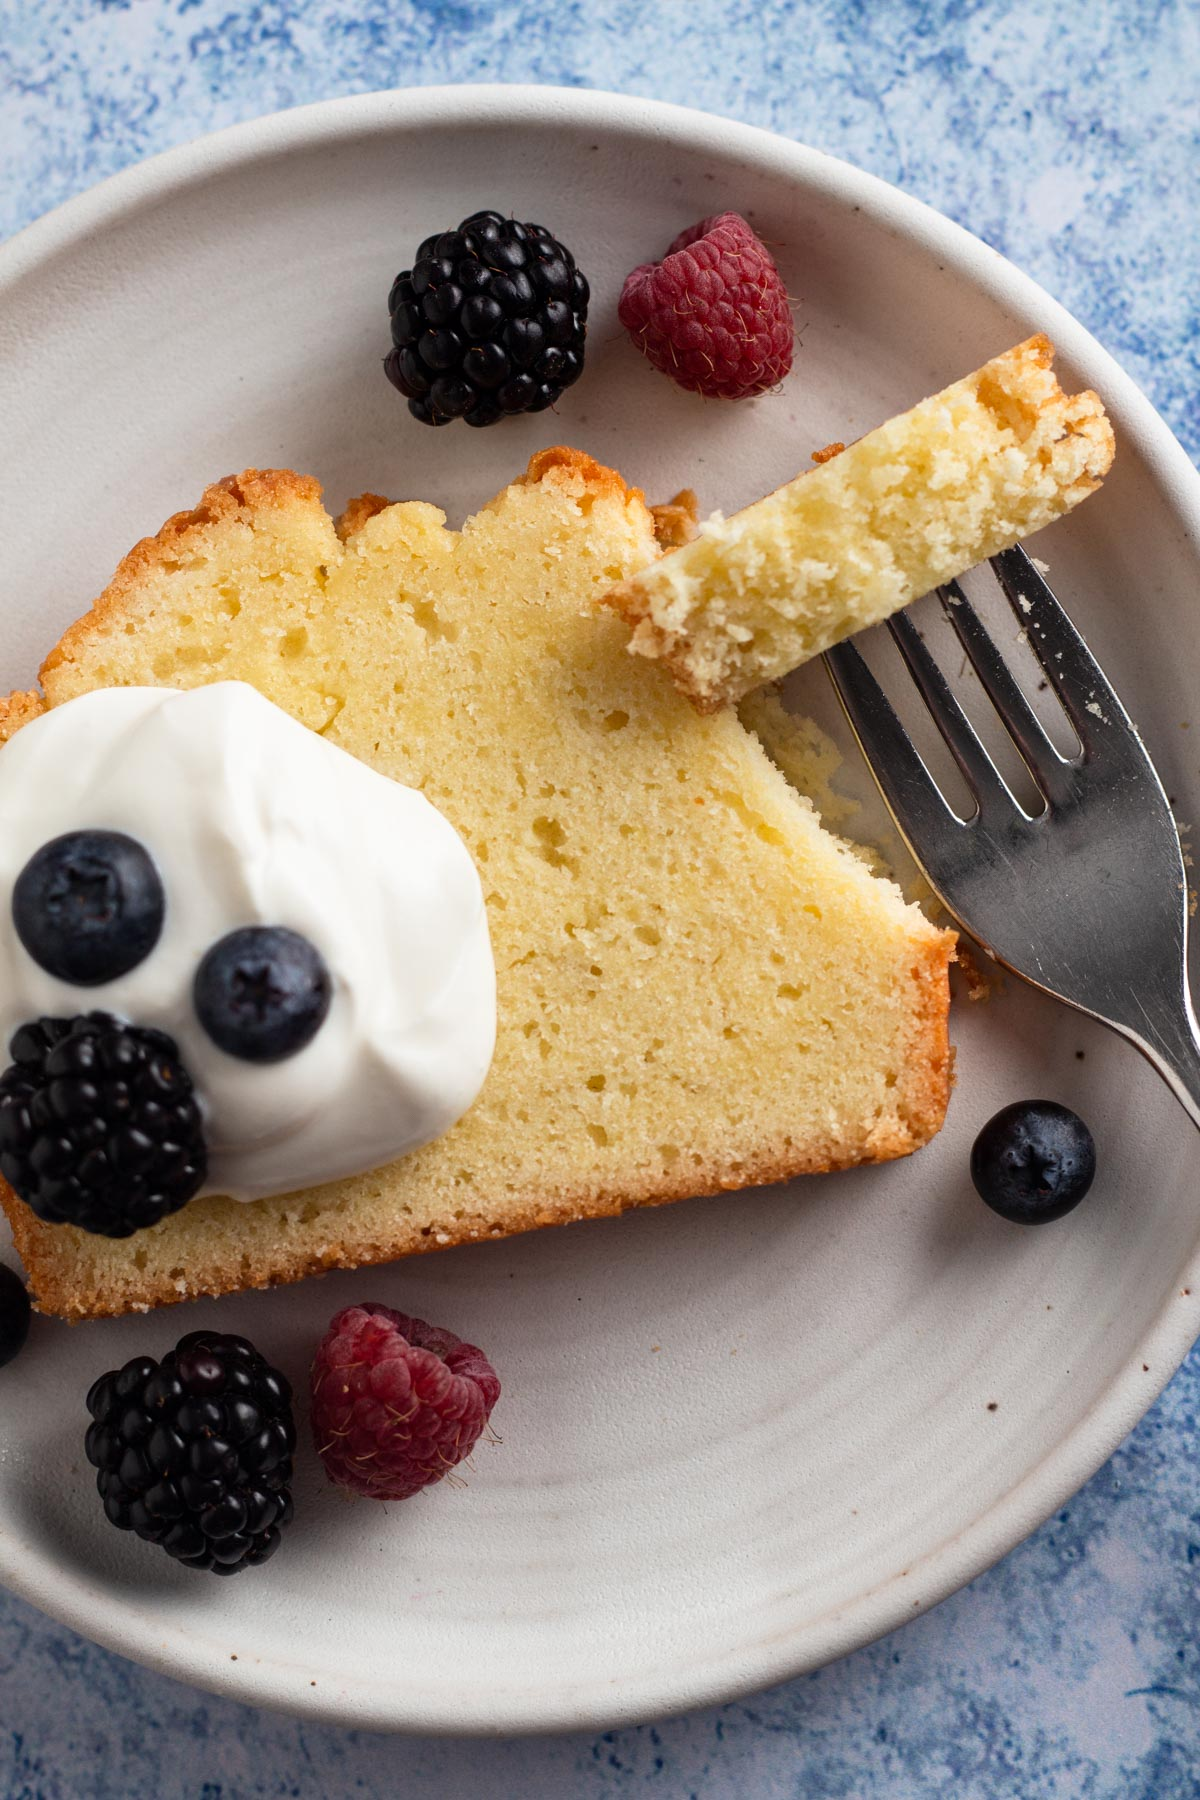 overhead view of a slice of pound cake on a white plate with whipped cream, fresh berries, and a fork